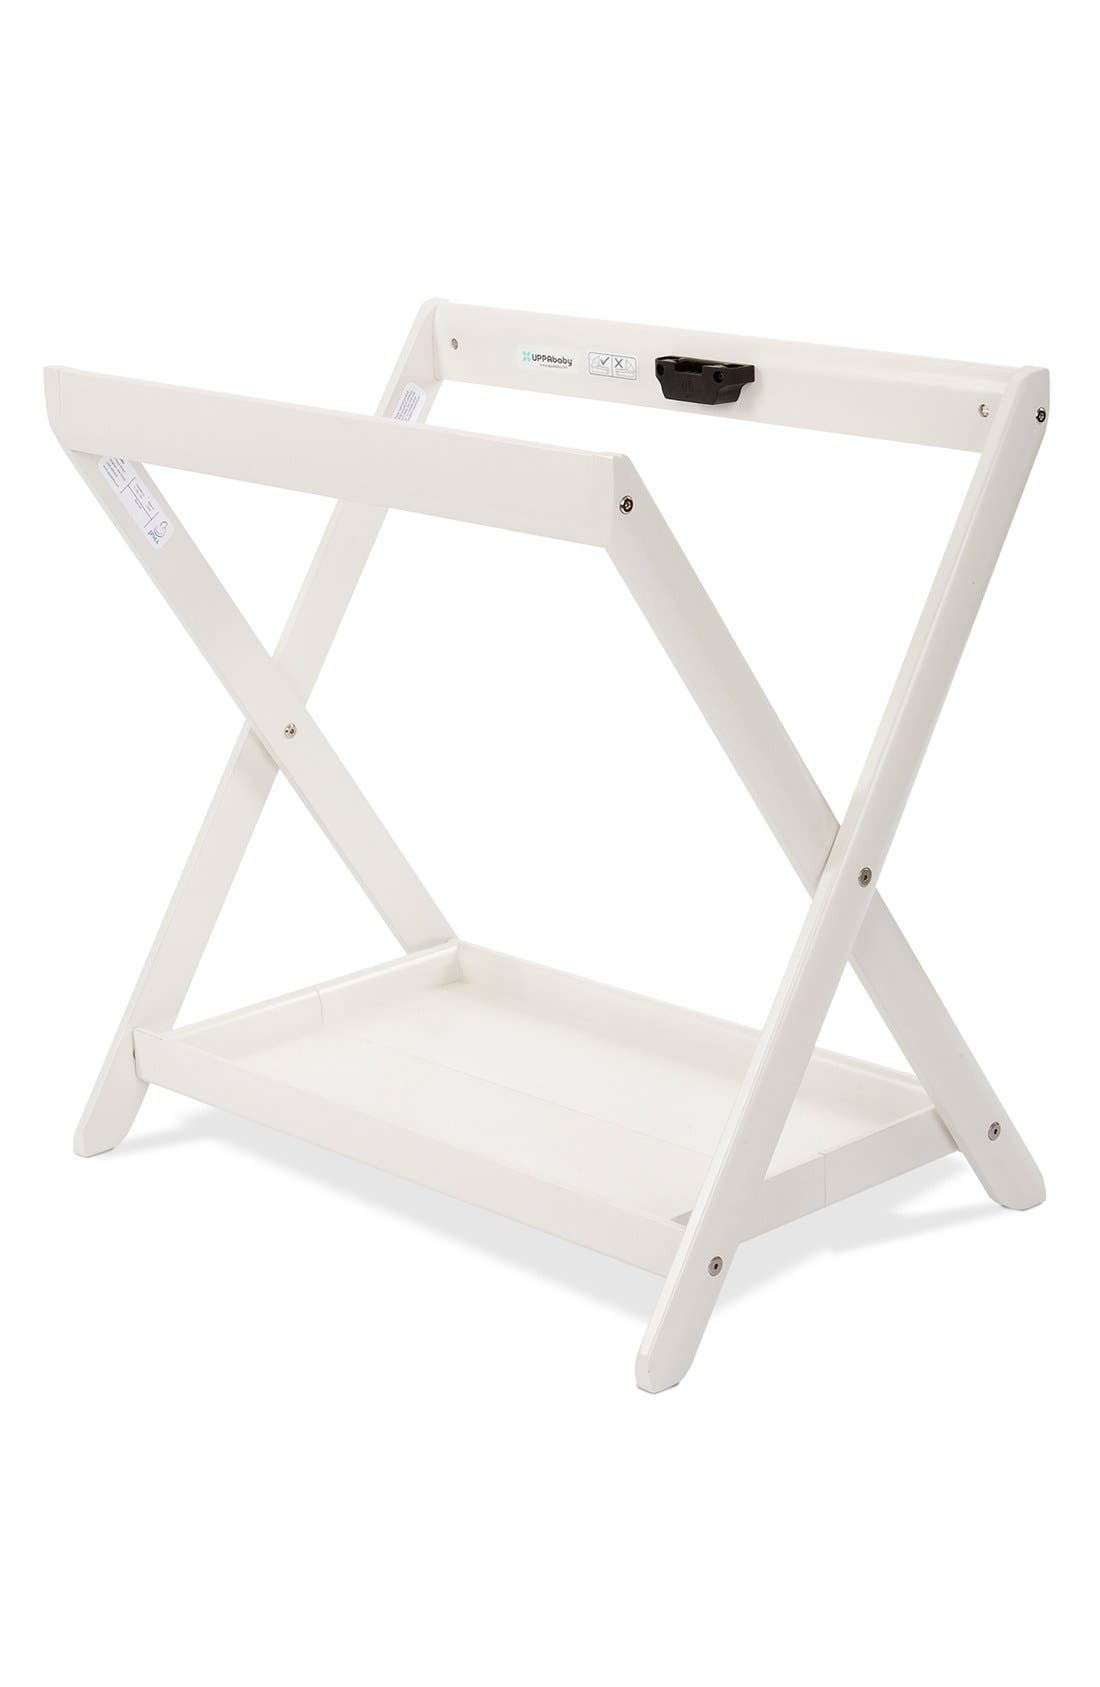 VISTA Bassinet Stand,                             Main thumbnail 1, color,                             White